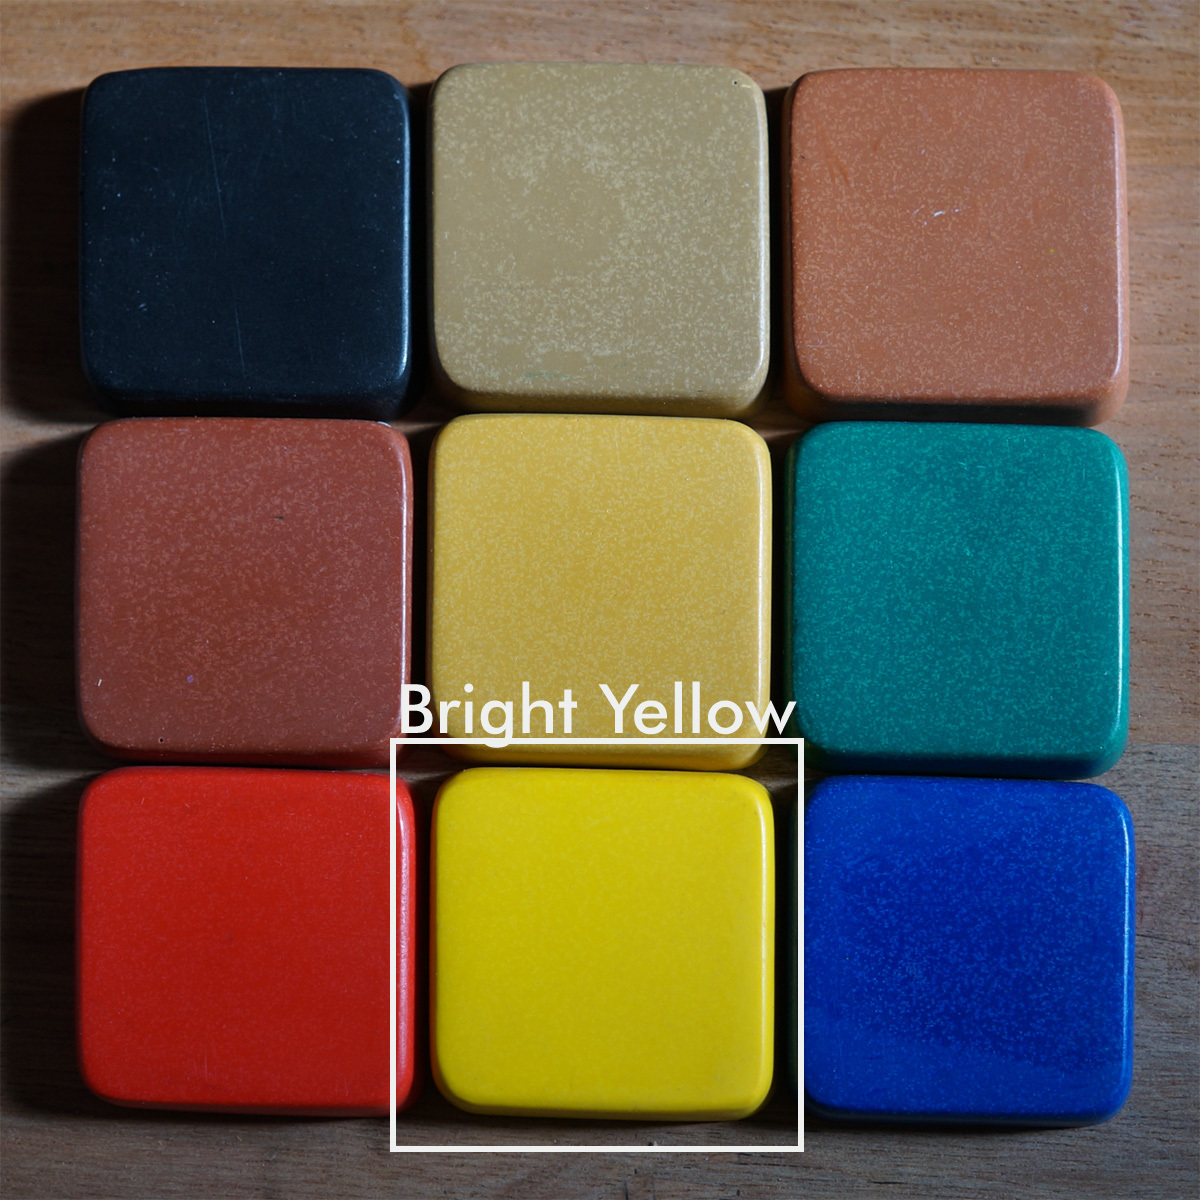 PIGMENT BRIGHT YELLOW 1kg(着色剤:黄 1kg) - 画像3